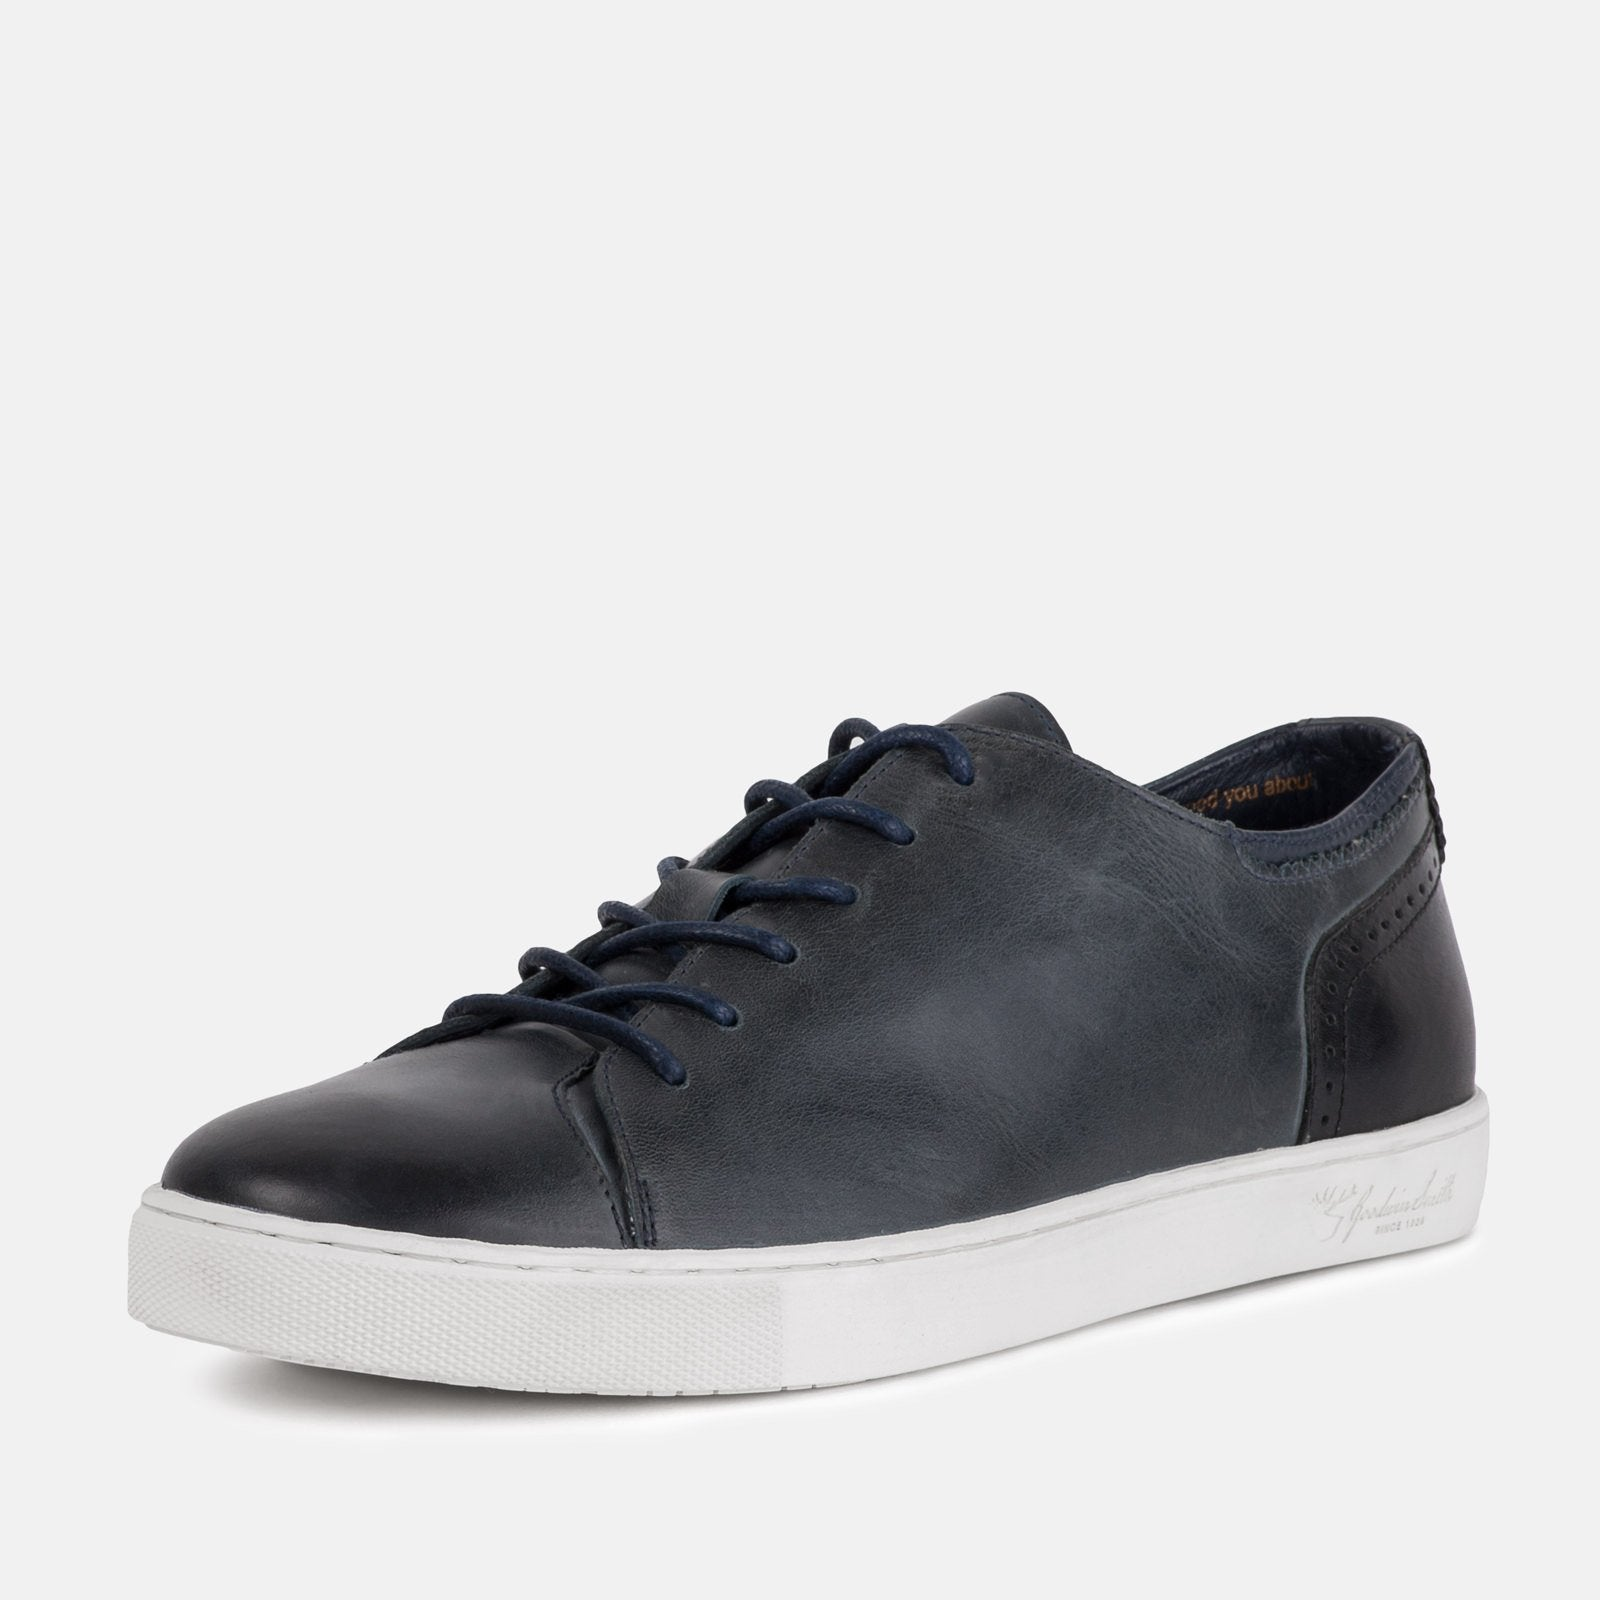 Goodwin Smith Footwear UK 6 / EURO 39 / US 7 / Navy / Leather HARLEM NAVY